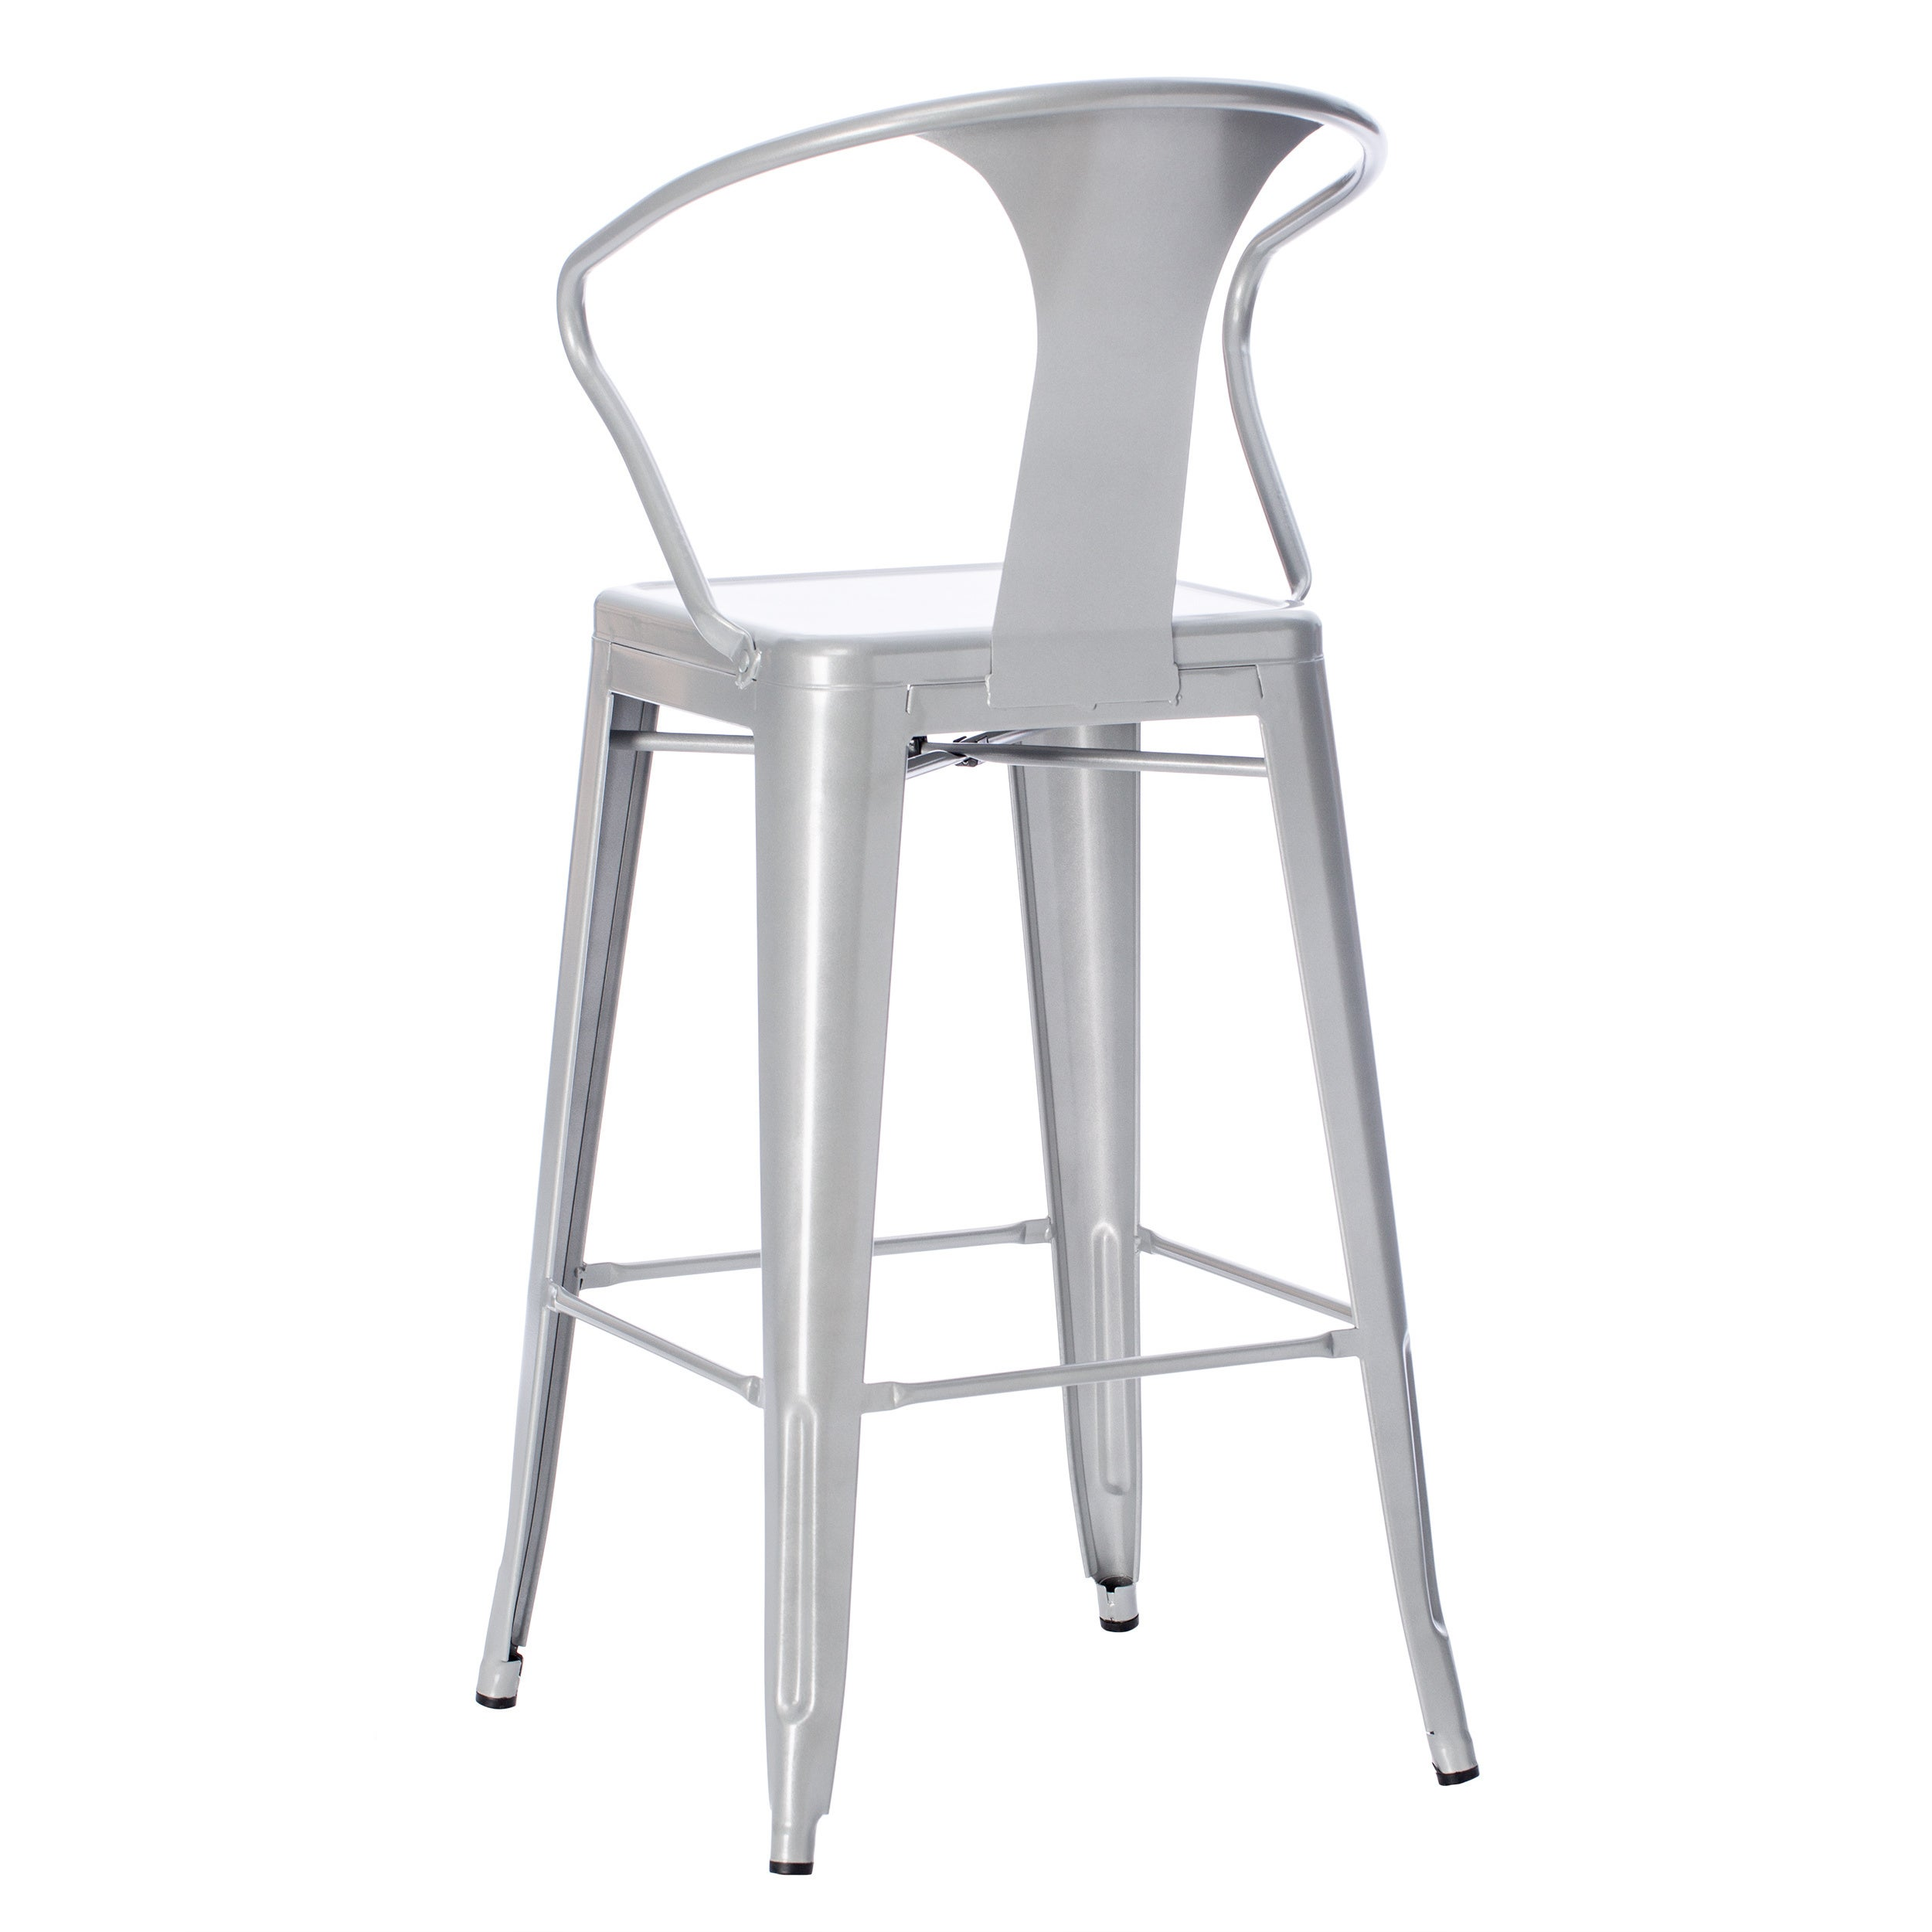 tabouret bar stools with backs medium size of furniture tabouret inch metal counter stools. Black Bedroom Furniture Sets. Home Design Ideas